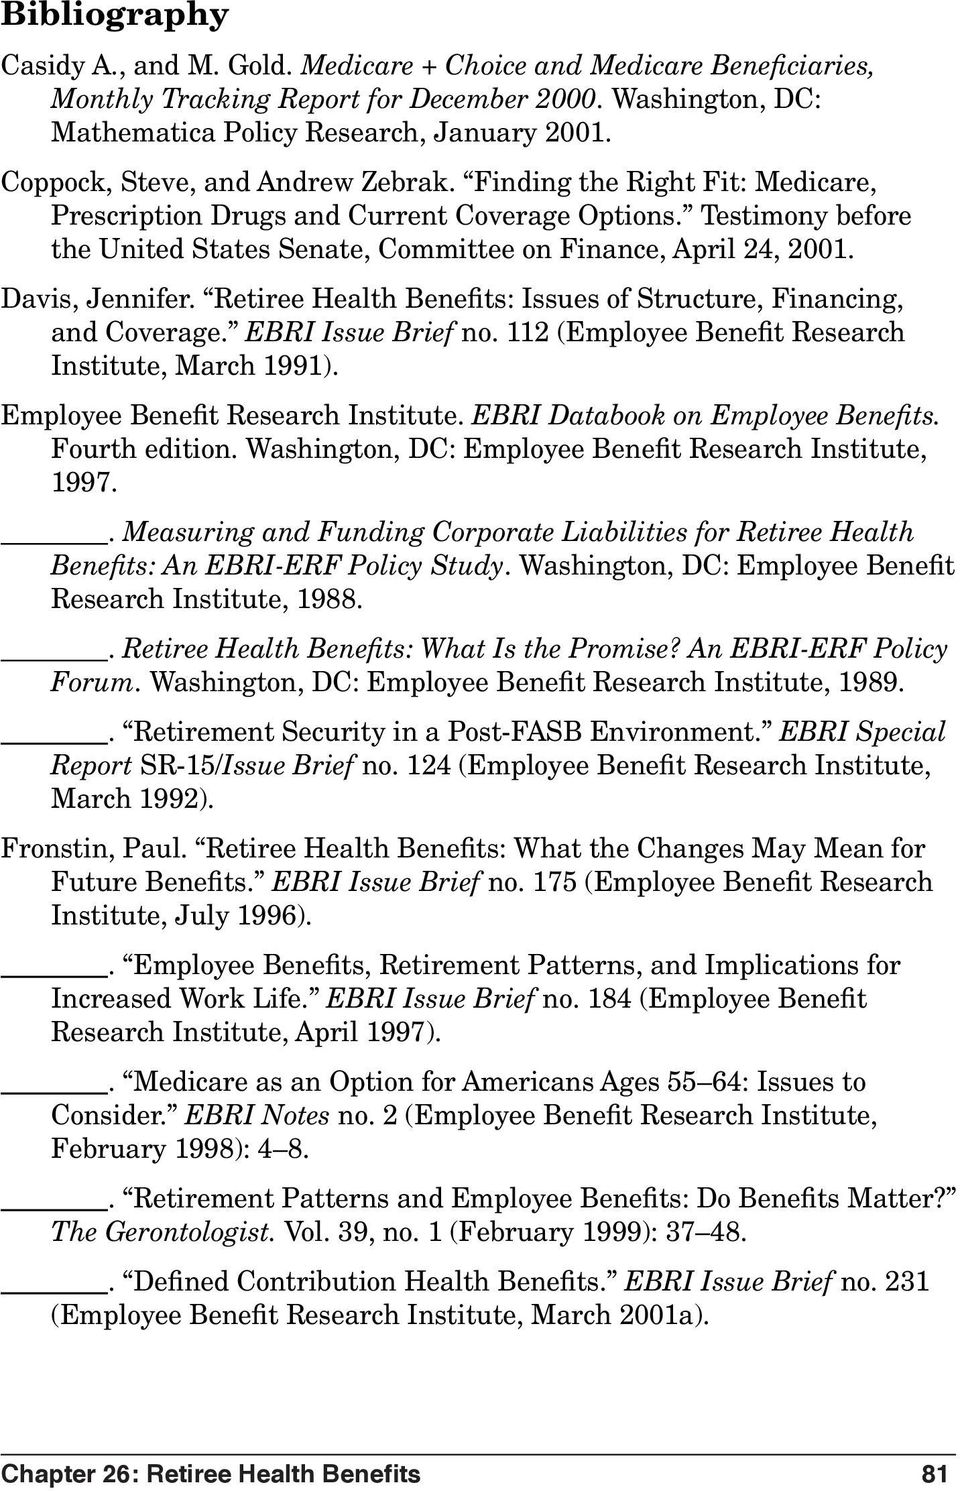 Davis, Jennifer. Retiree Health Benefits: Issues of Structure, Financing, and Coverage. EBRI Issue Brief no. 112 (Employee Benefit Research Institute, March 1991). Employee Benefit Research Institute.